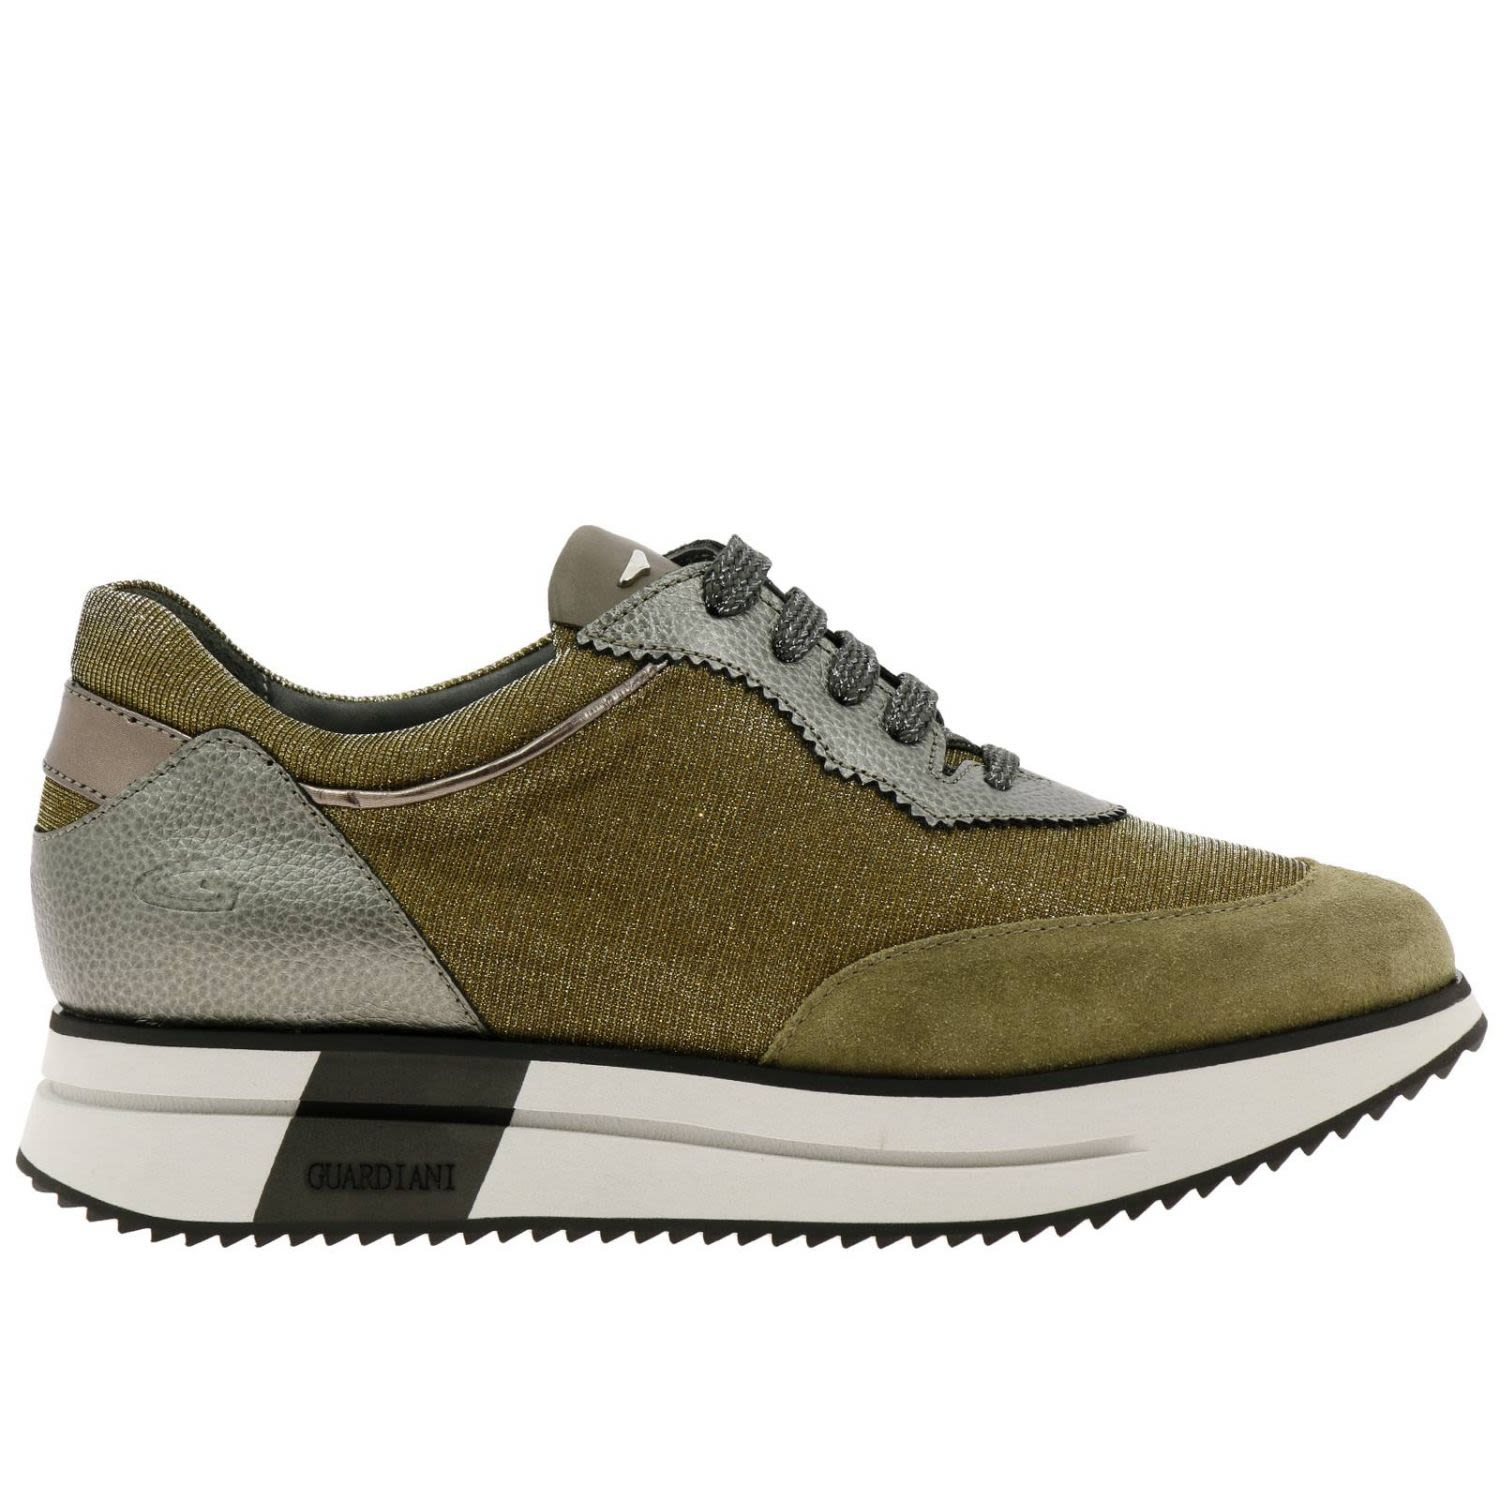 ALBERTO GUARDIANI Guardiani Sneakers Shoes Women Guardiani in Gold